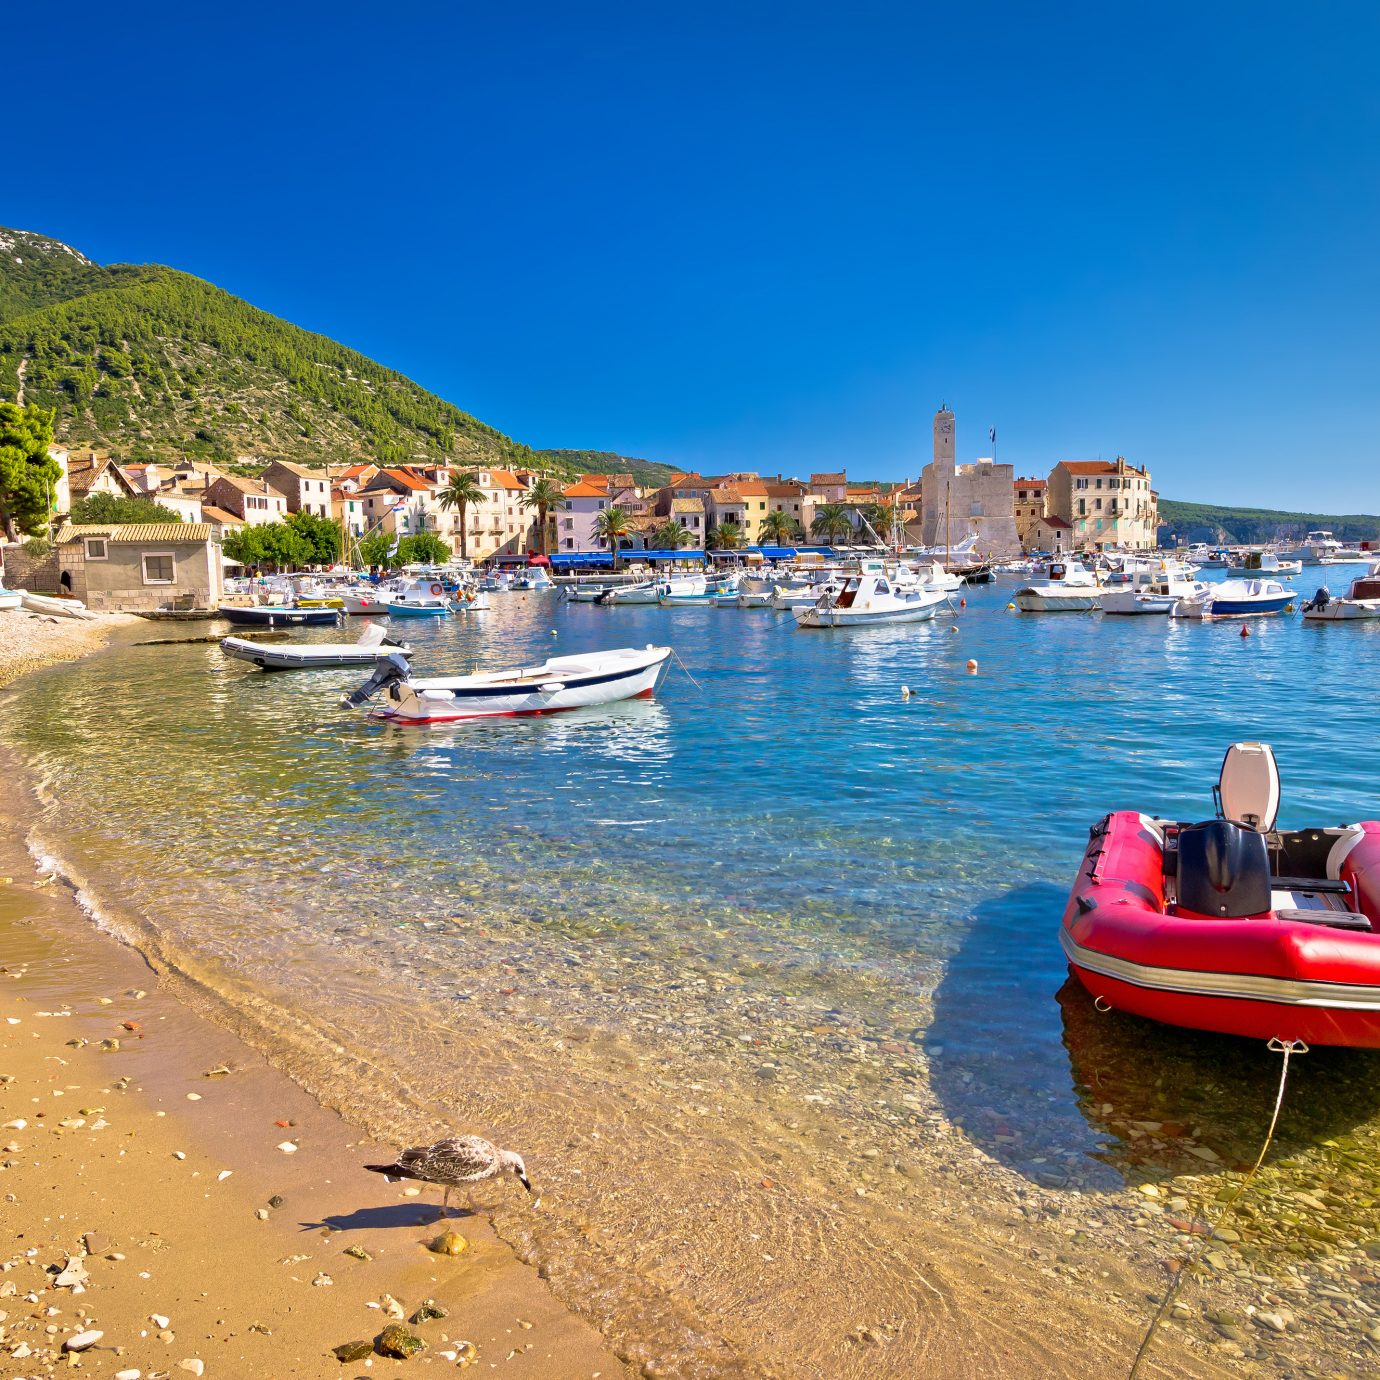 Sand beach in Komiza fishermen village, Island of Vis, Croatia